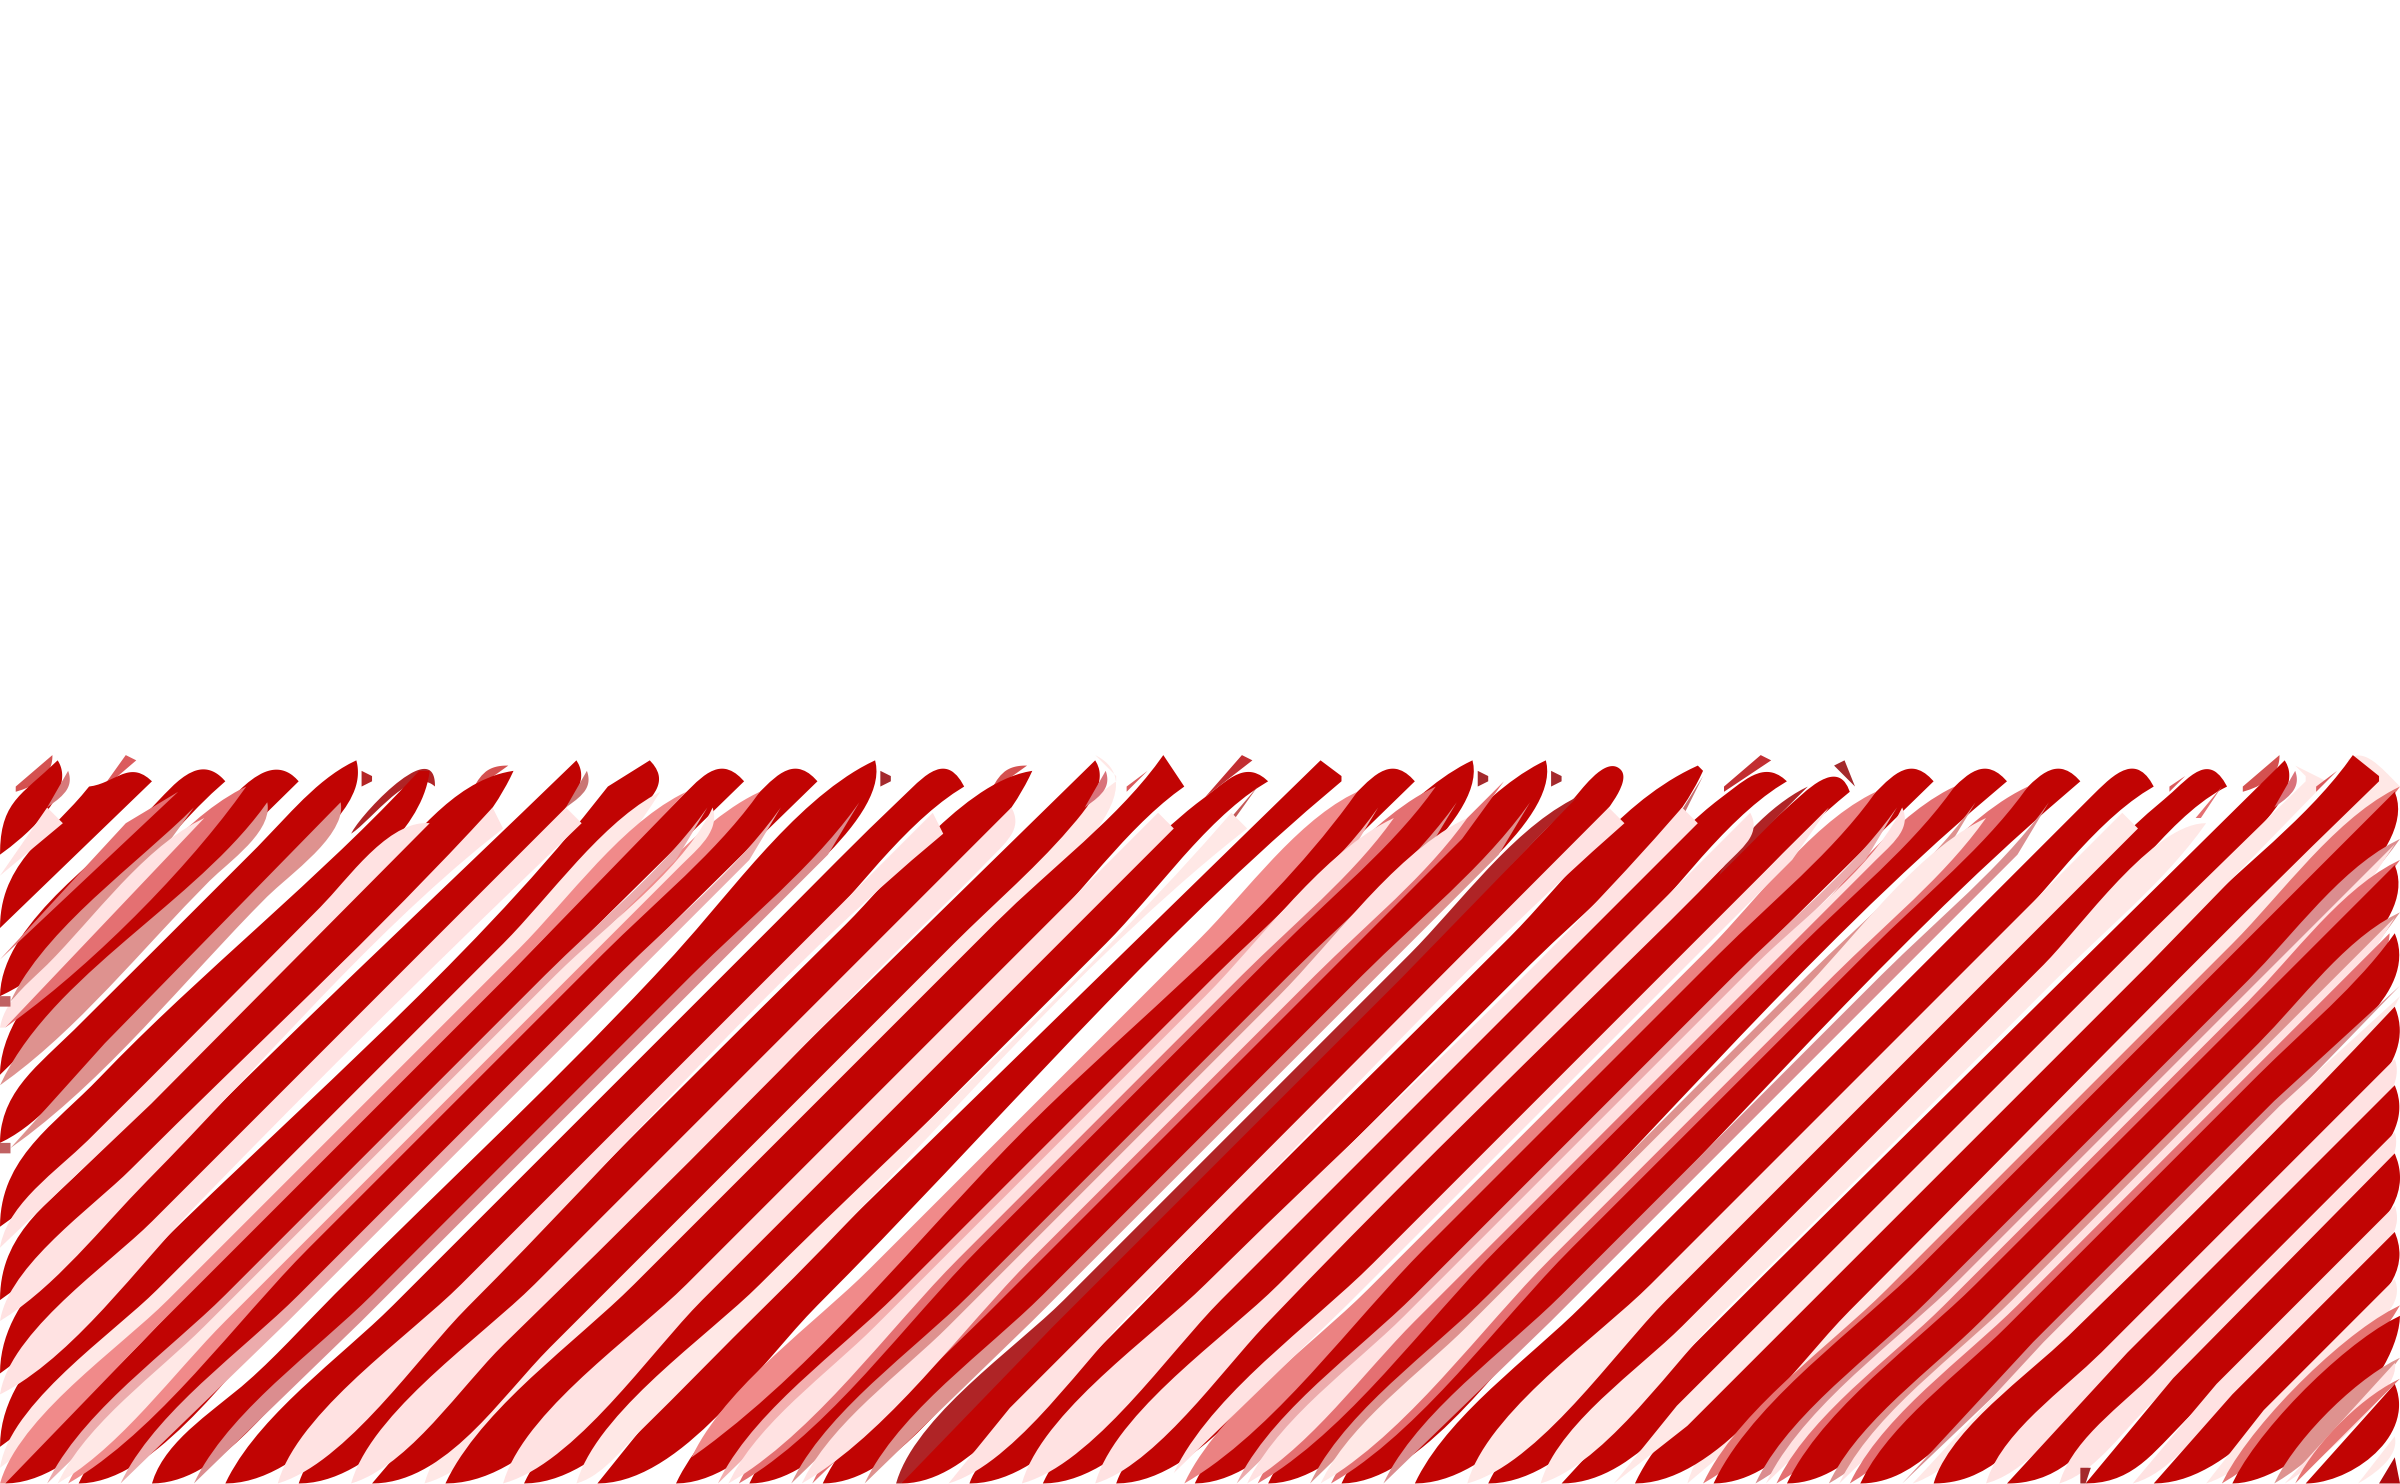 Poland flag linear by Joesph